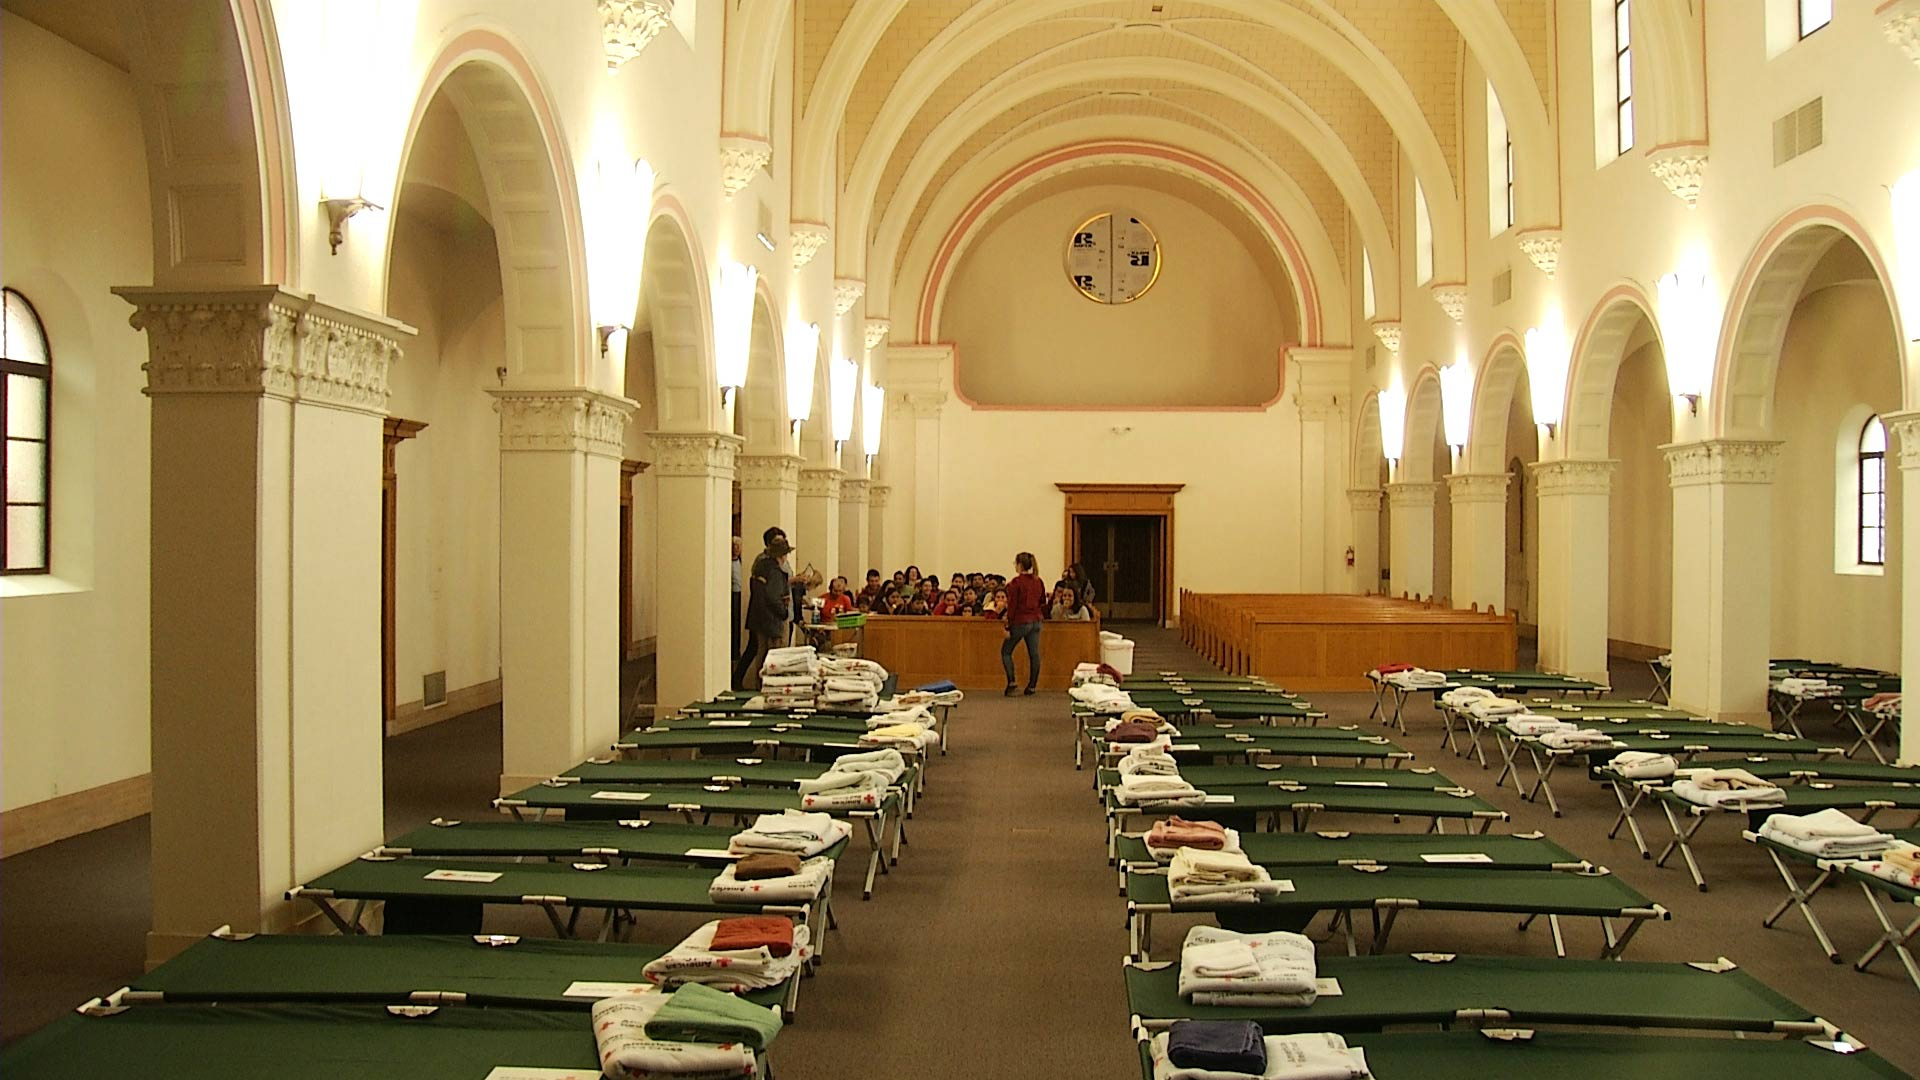 Rows of cots are set up inside the Benedictine Monastery in February 2019. The monastery served as a temporary shelter for migrant families seeking asylum.